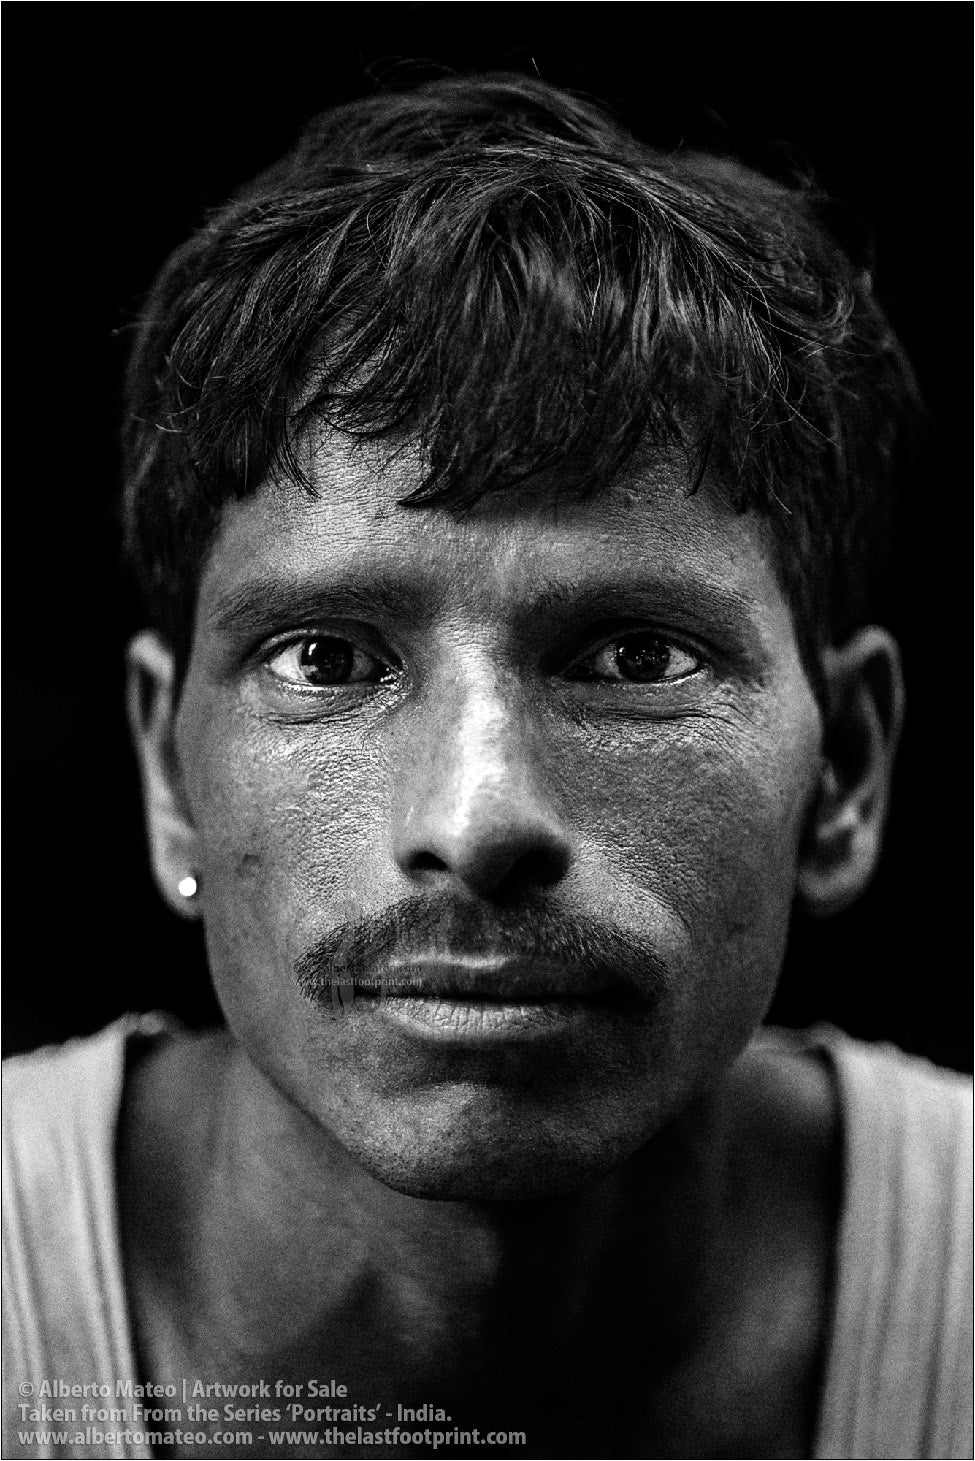 Portrait of young Porter in Bara Bazar streets, Kolkata, India.